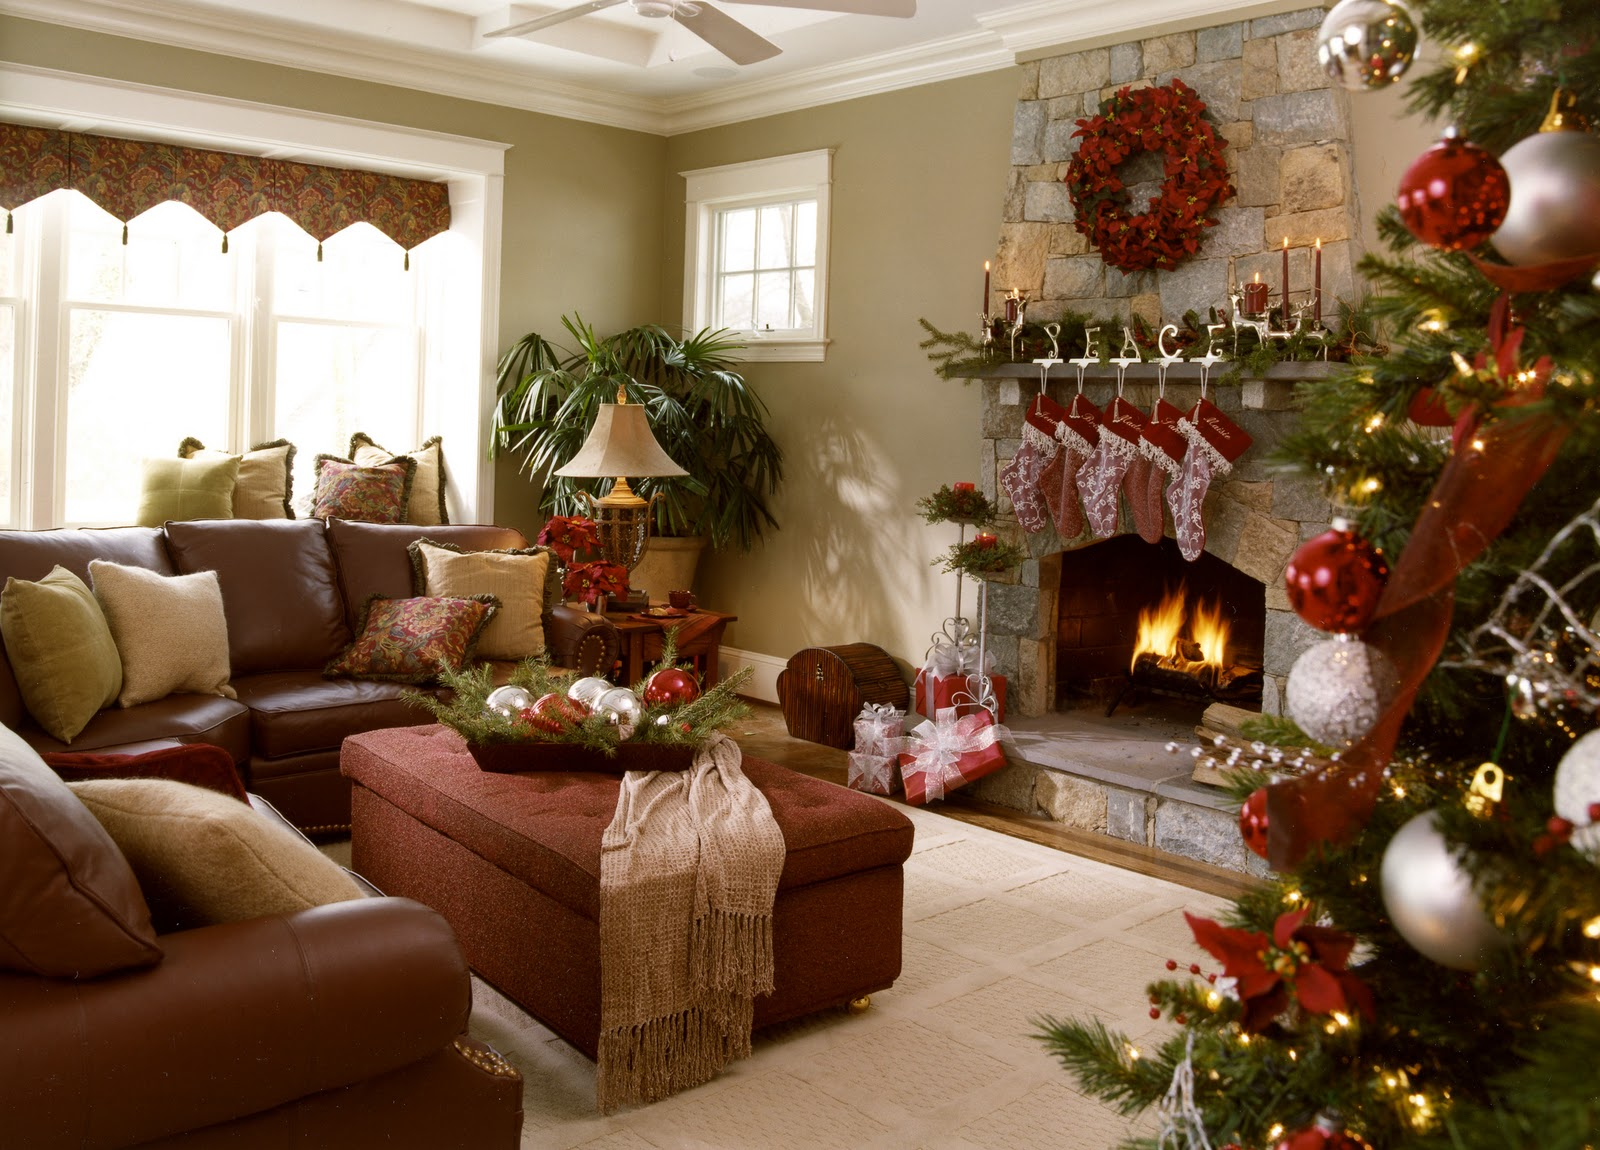 Nine ideas how to welcome the Christmas spirit   Interior Design     holiday decorating